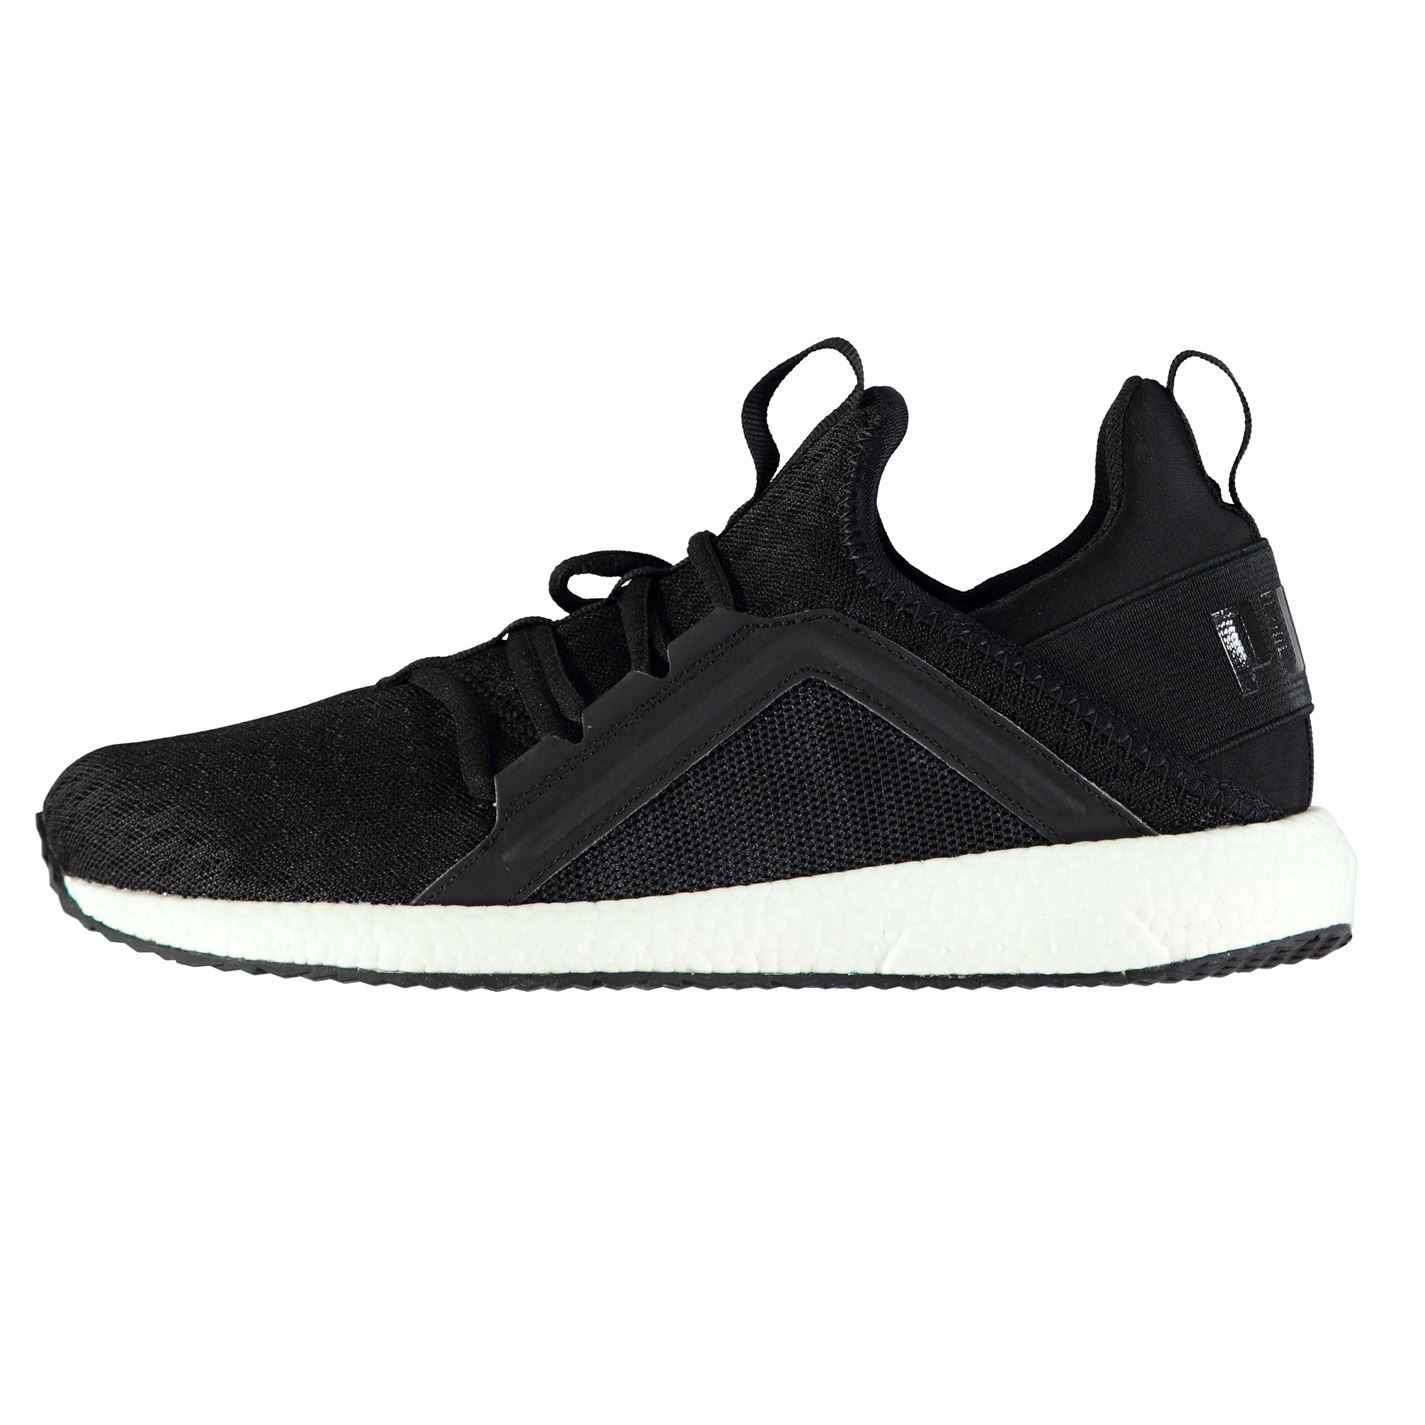 Details about Puma Mega NRGY Running Shoes Womens Black Run Jogging Trainers Sneakers